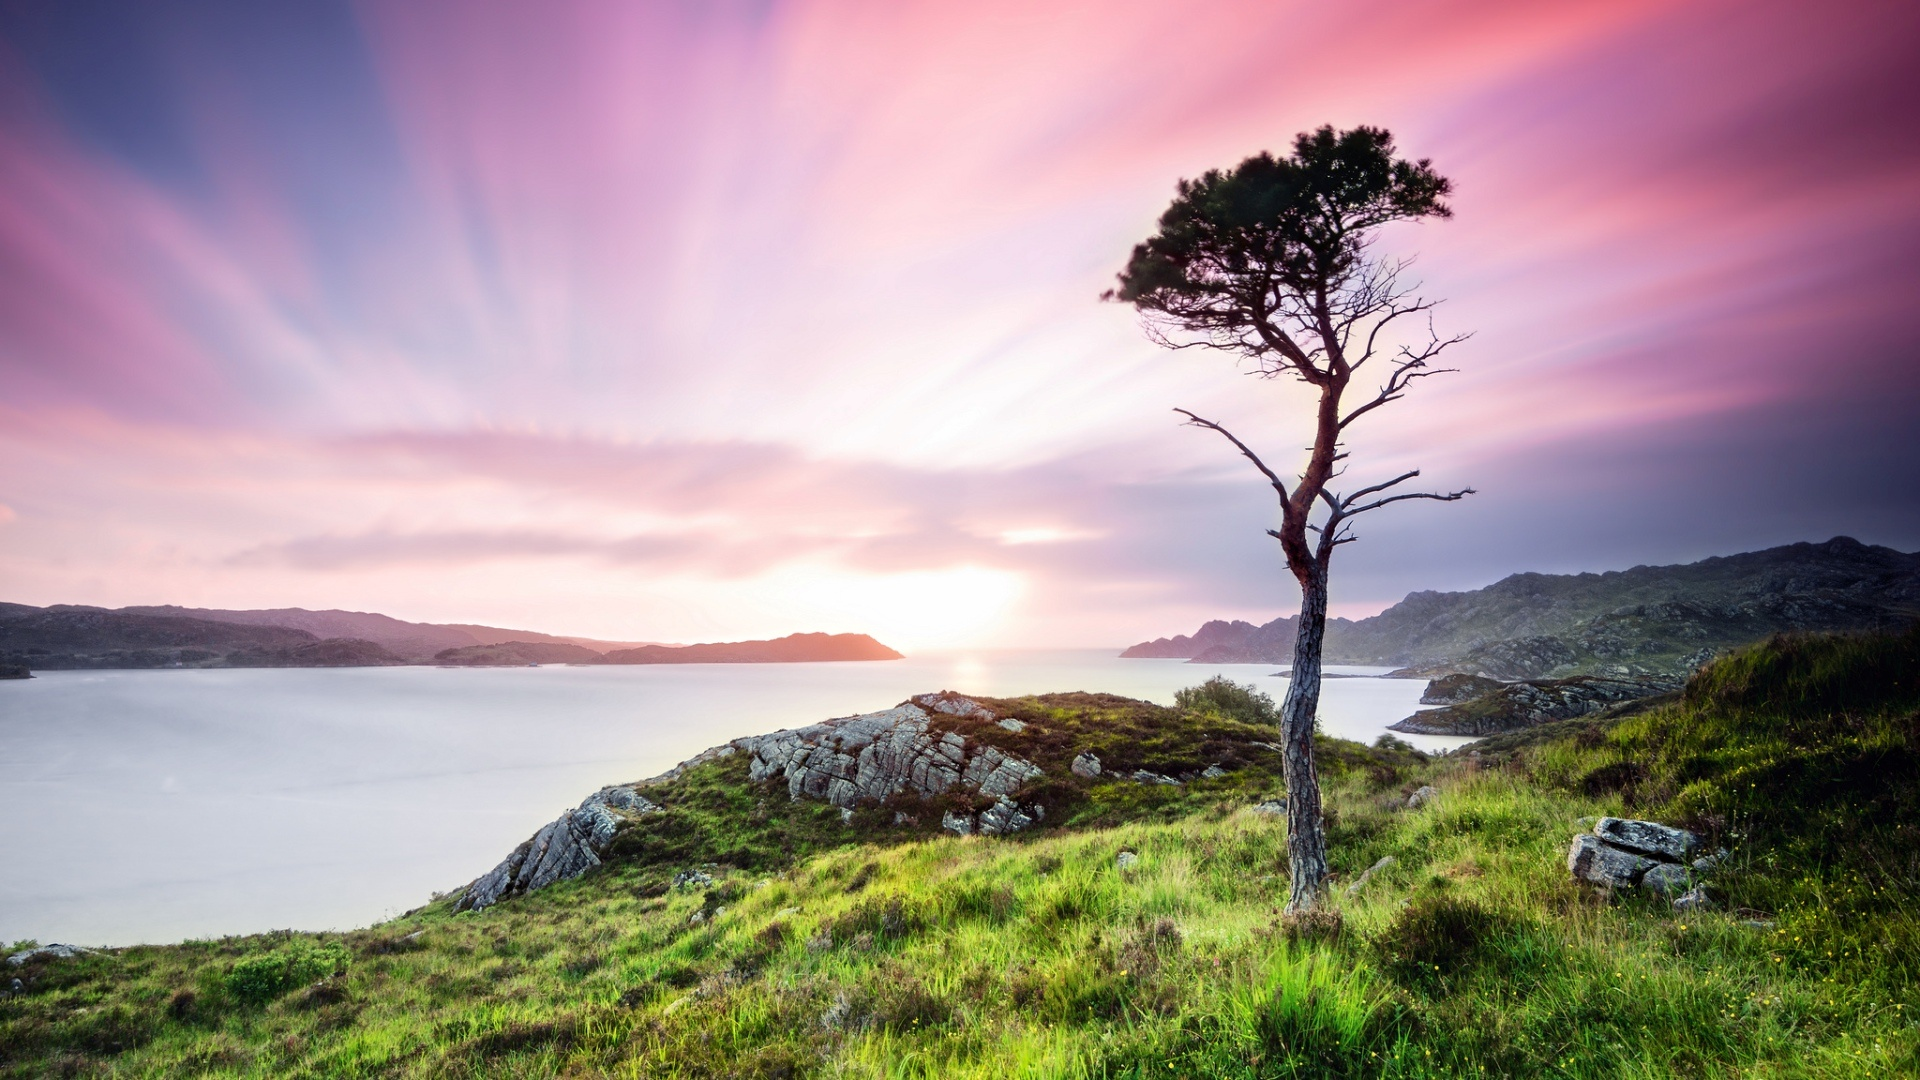 Hd Wallpapers Brands Logos Scotland Wallpapers Pictures Images